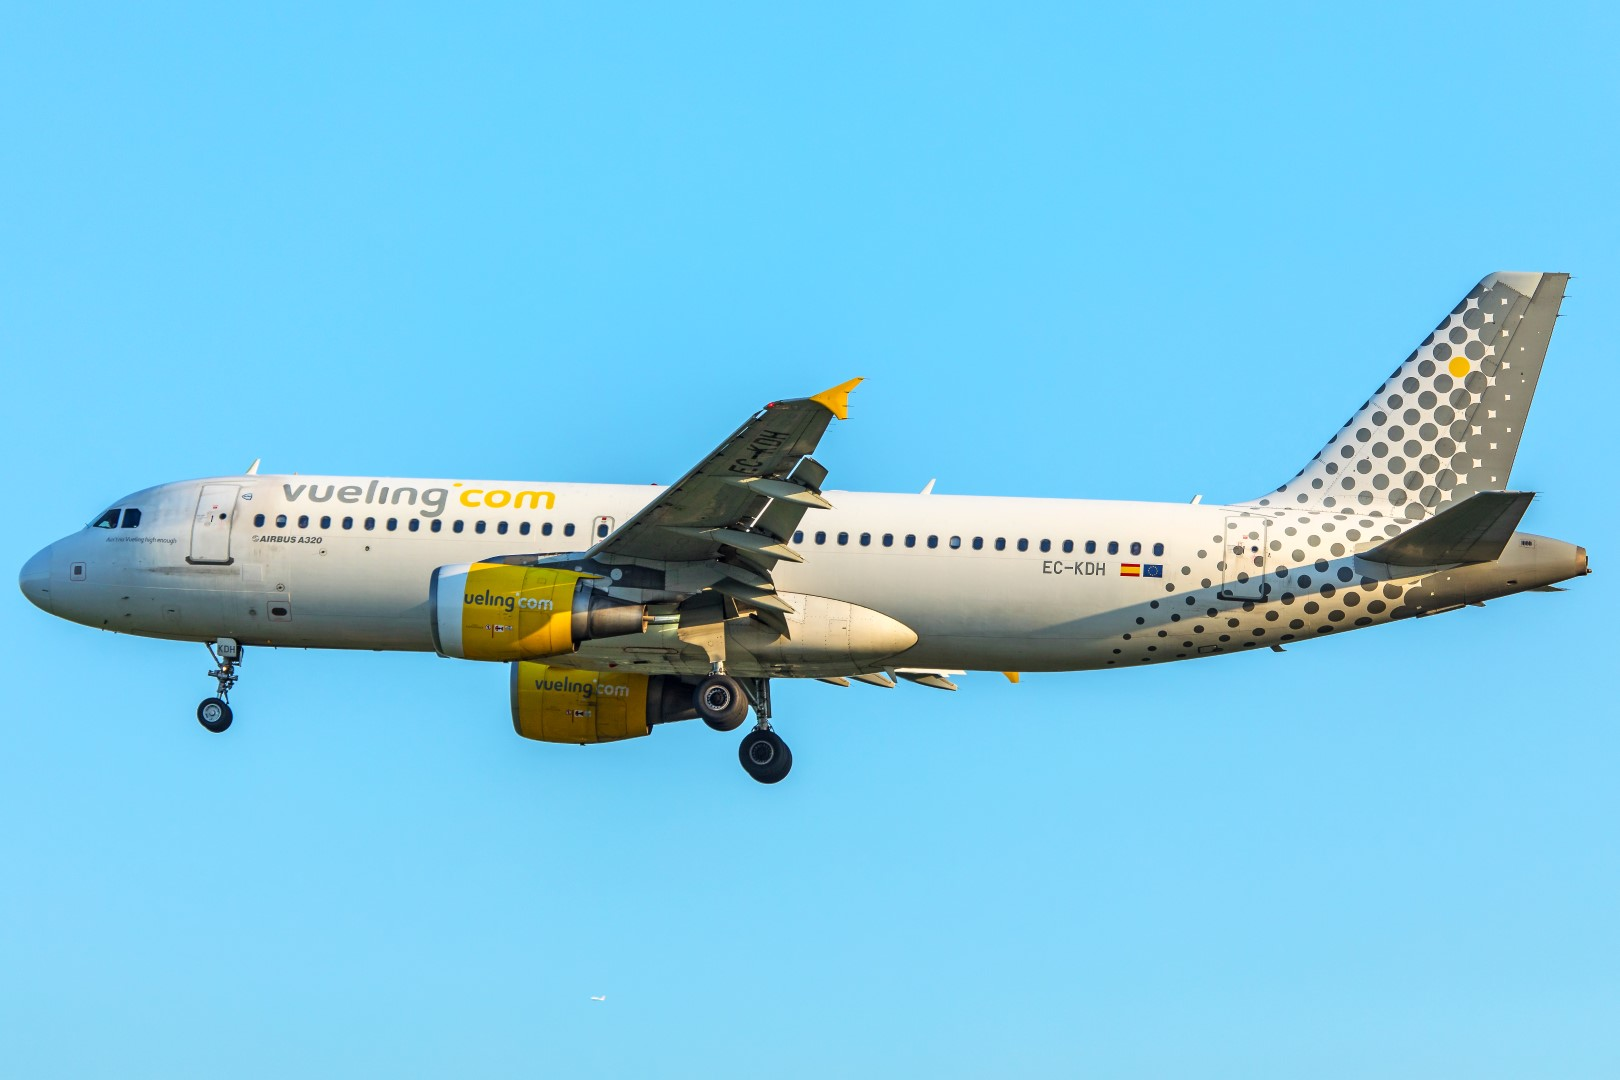 A Vueling Airbus A320 lands at London Heathrow International Airport (Photo: WIlliam Derrickson)